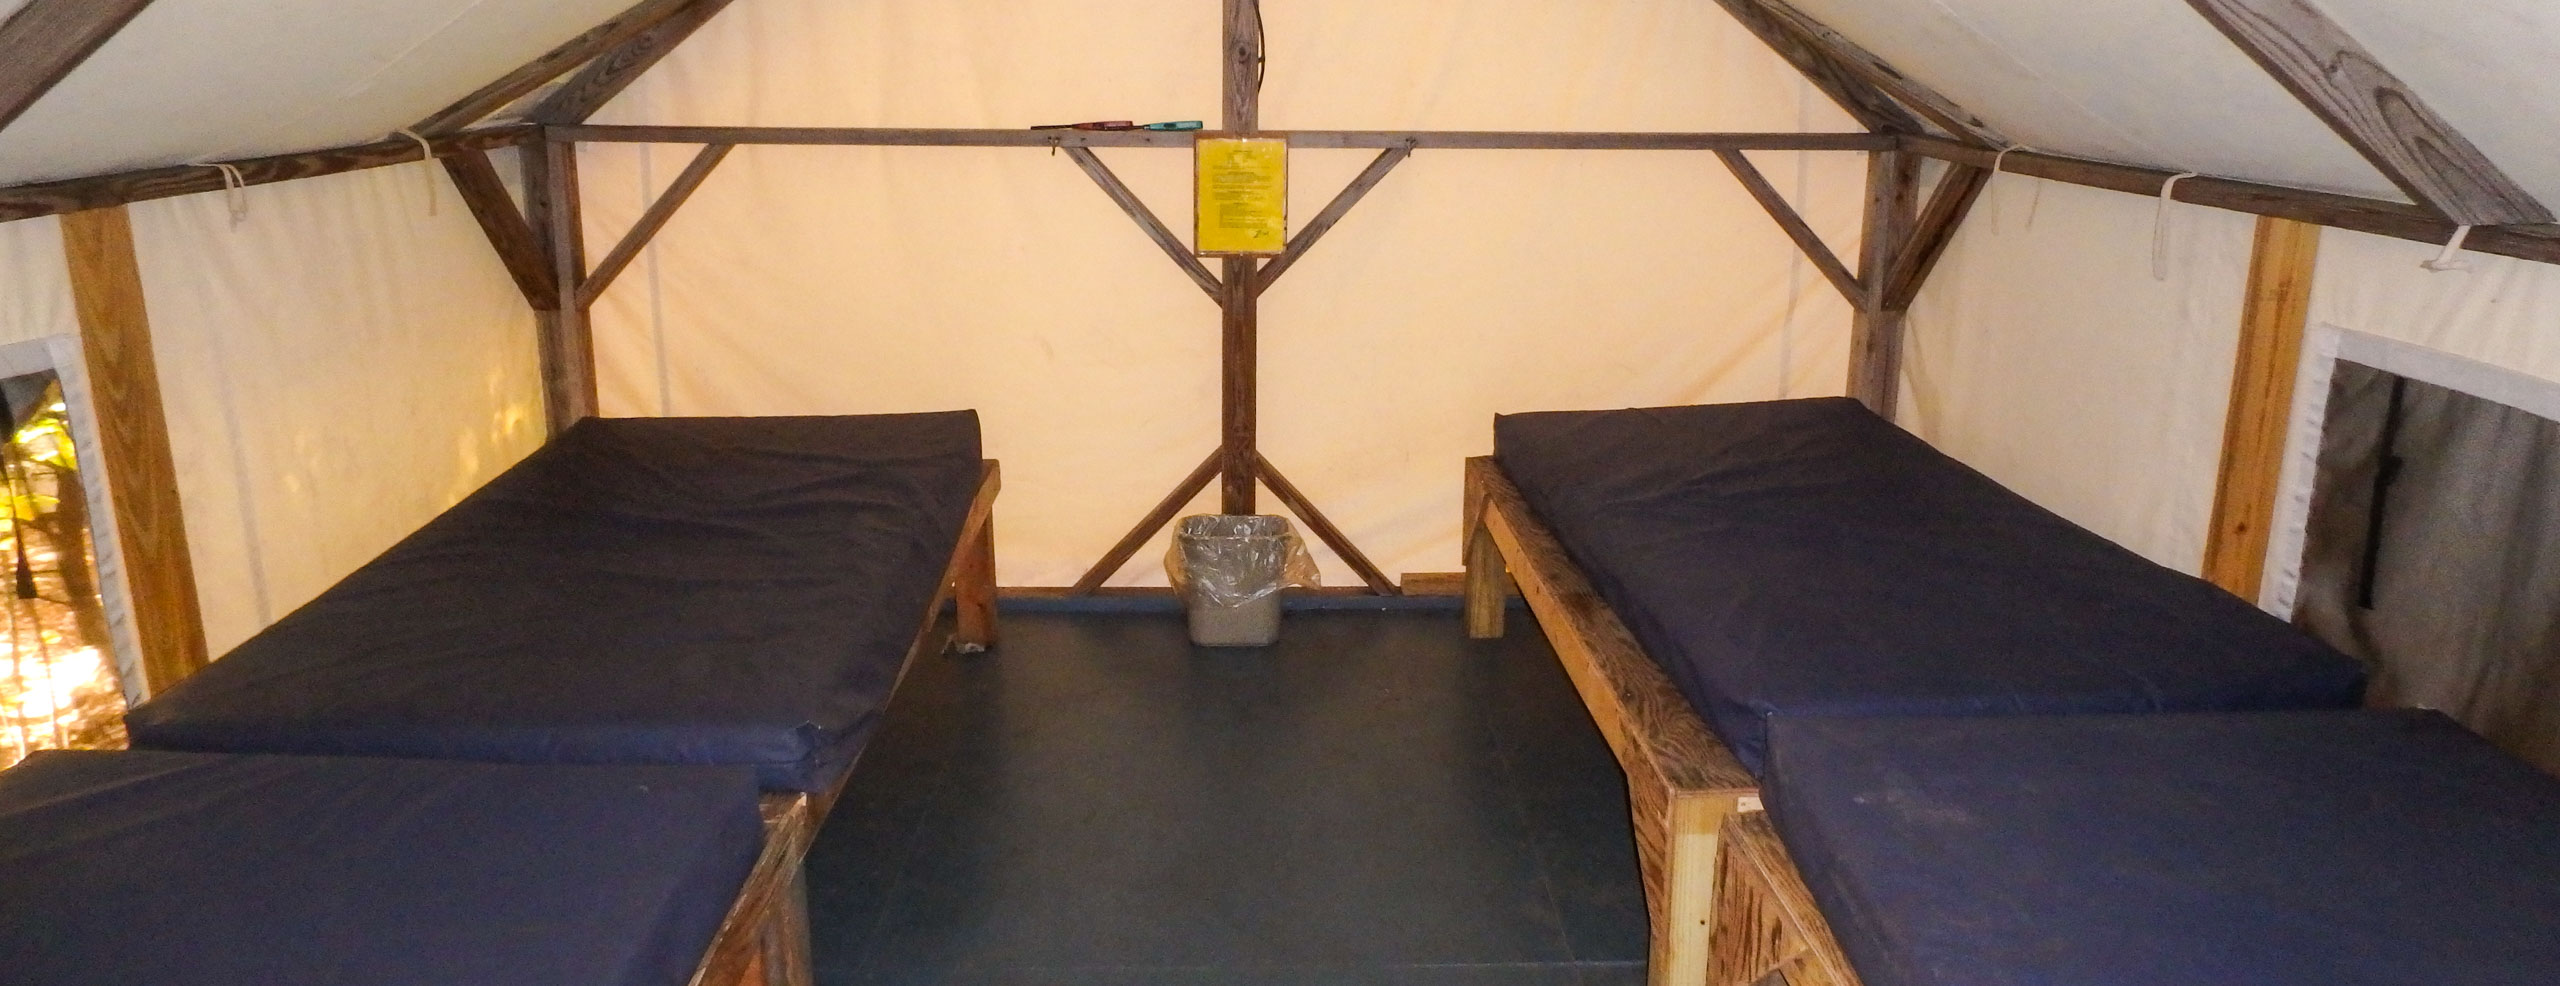 A cabin tent interior with two twin beds